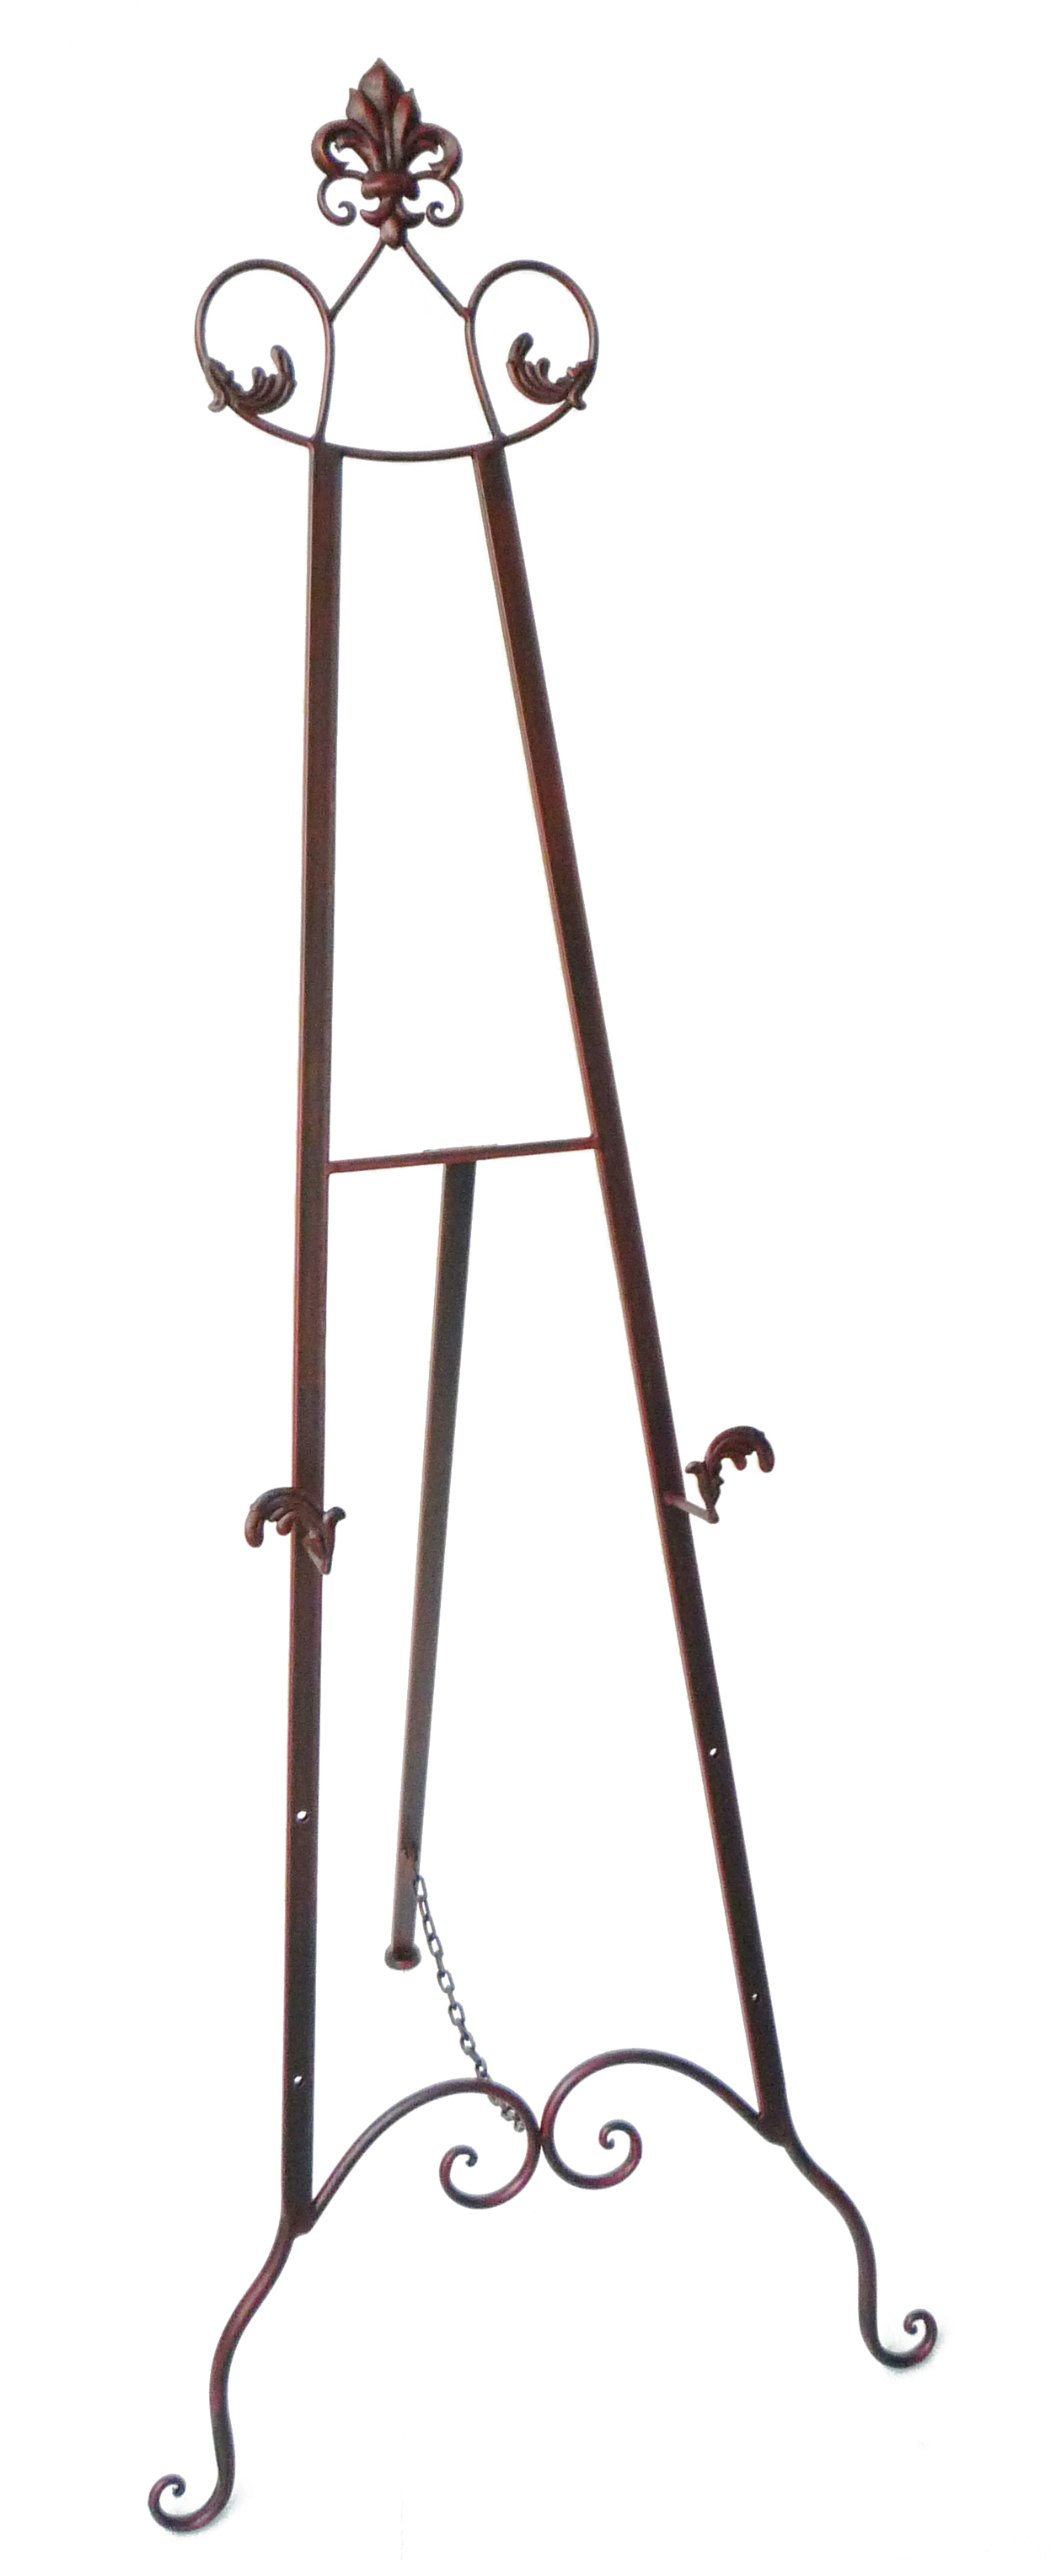 Designstyles Decorative Metal Easel Stand - Adjustable Floor Display for Art Pieces, Signs, Mirrors and Chalk/Dry Erase Boards - 59'' Tall, Antique Finished Iron, Bronze - Royal Accents by Designstyles